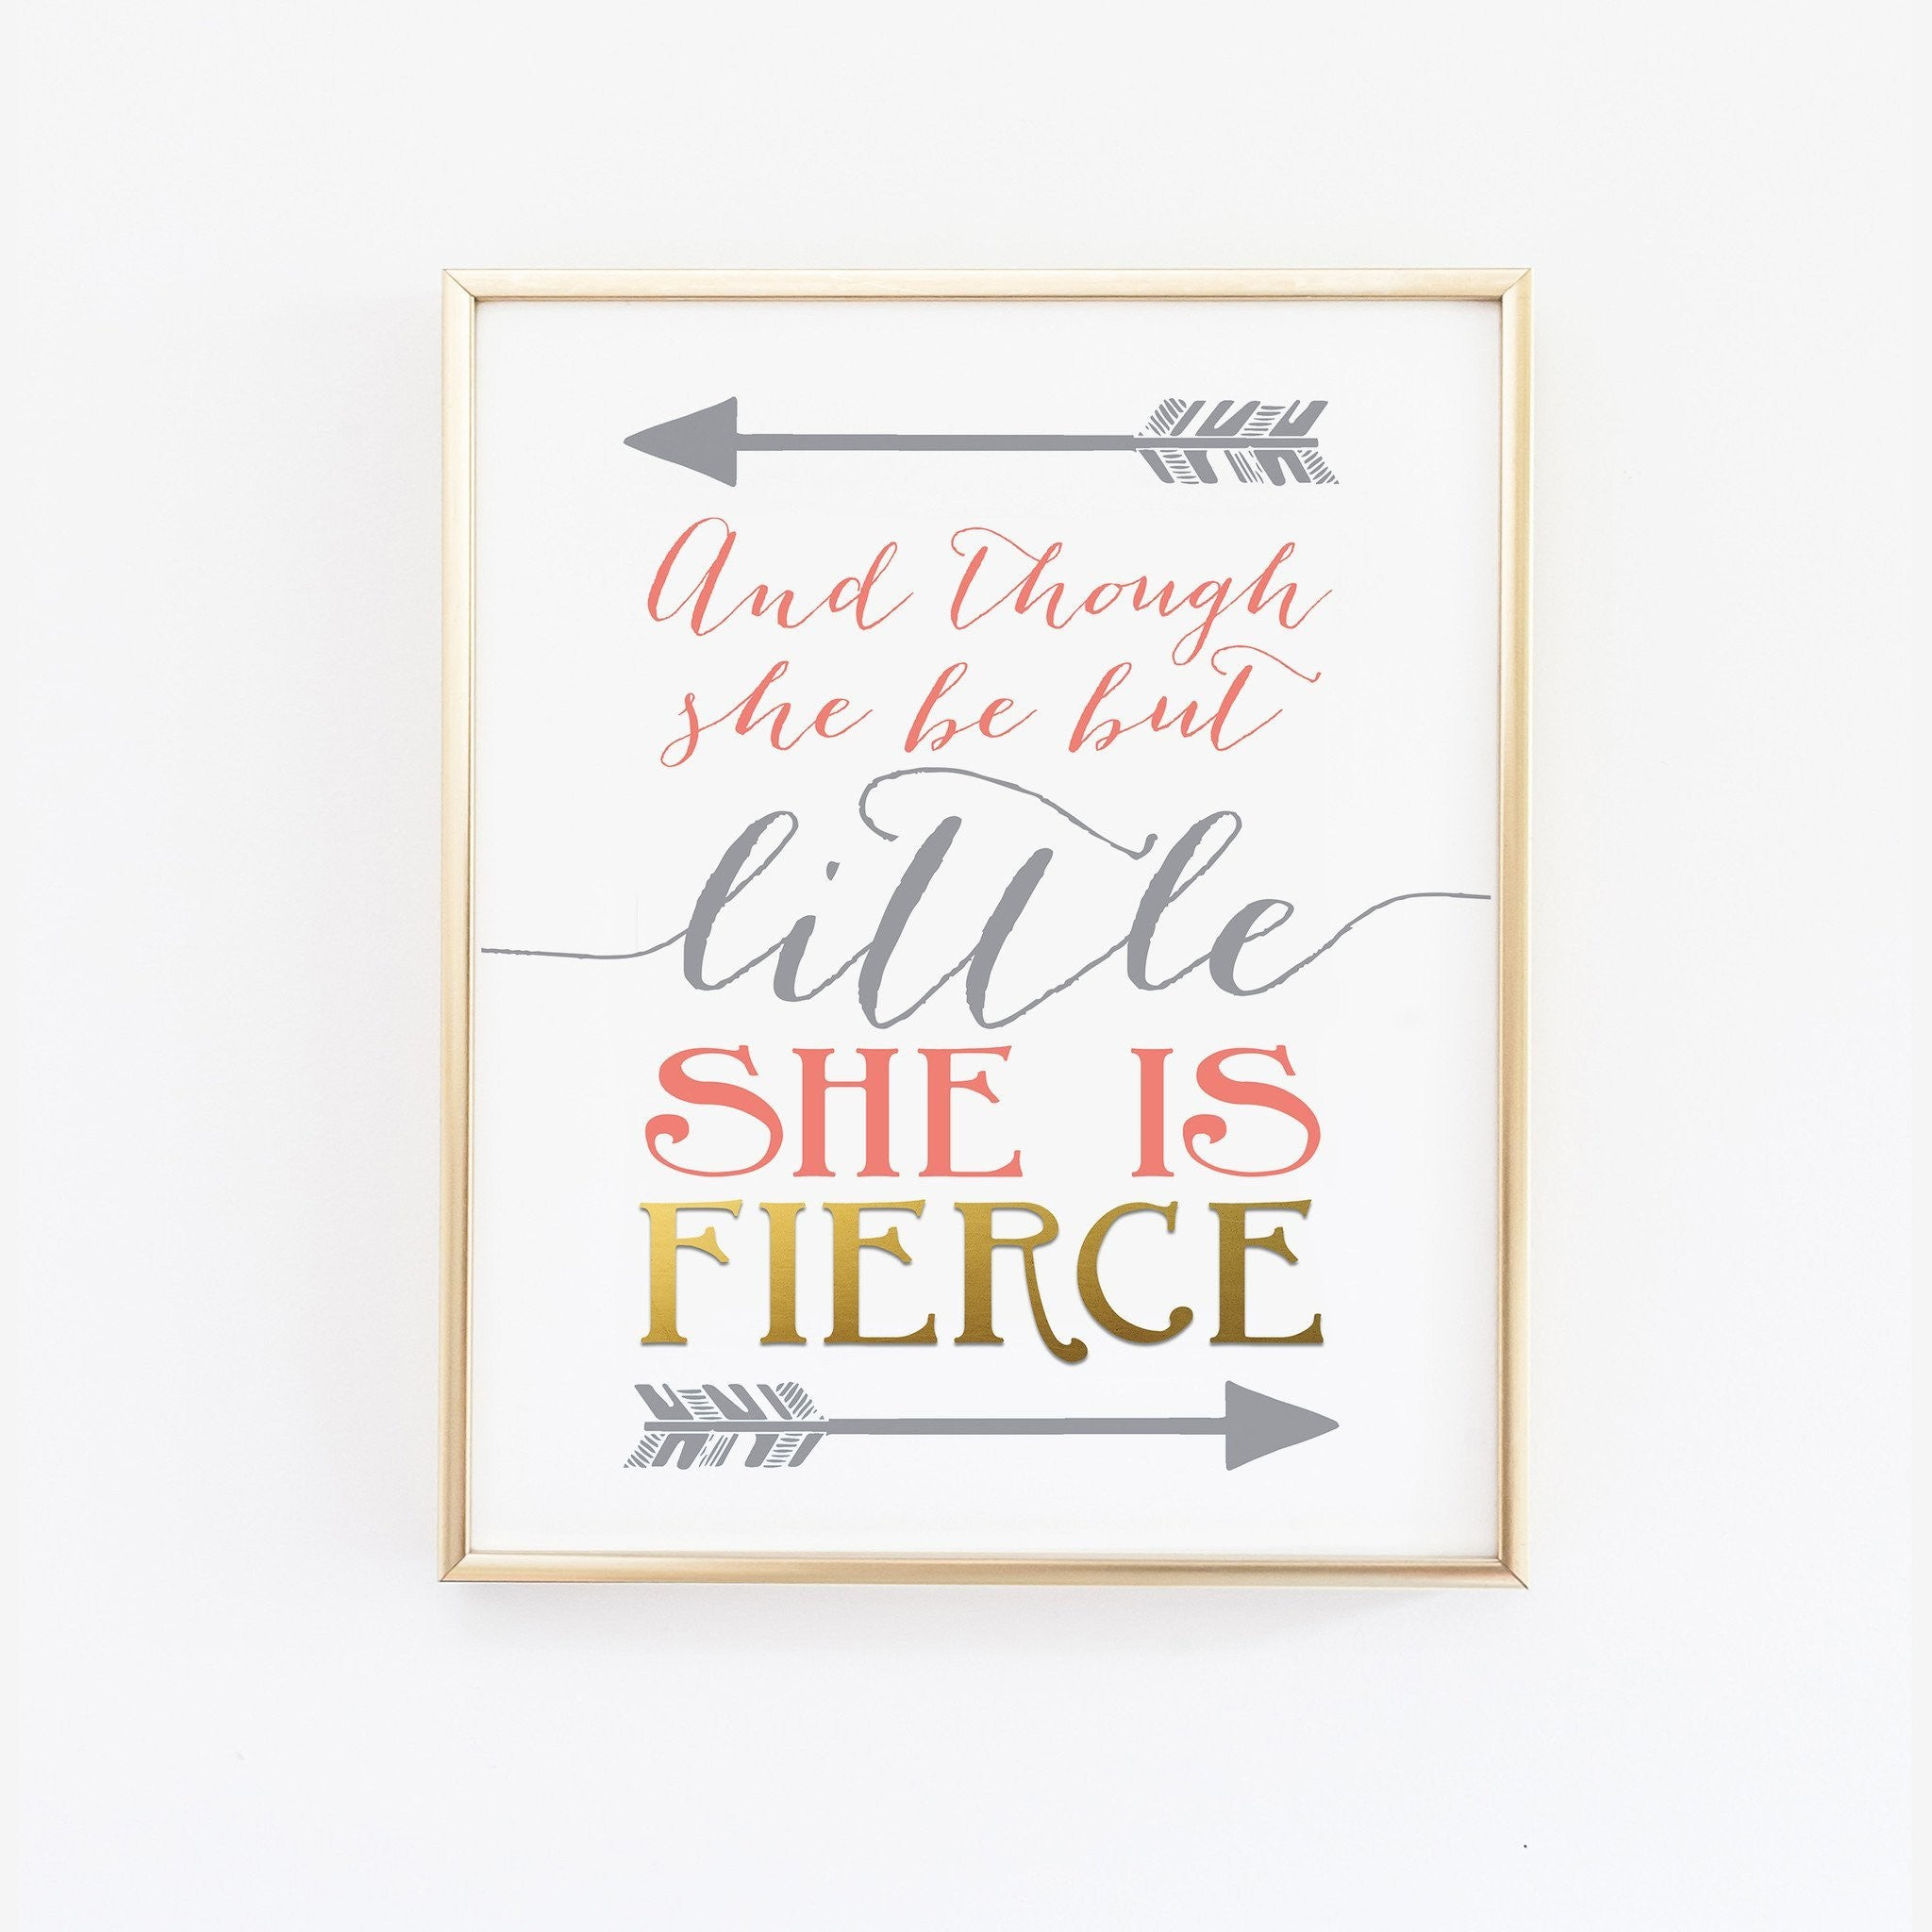 Nursery wall decor quotes Wall Prints And though she be but little, she is fierce - Gray, Coral and Gold Nursery Wall Print